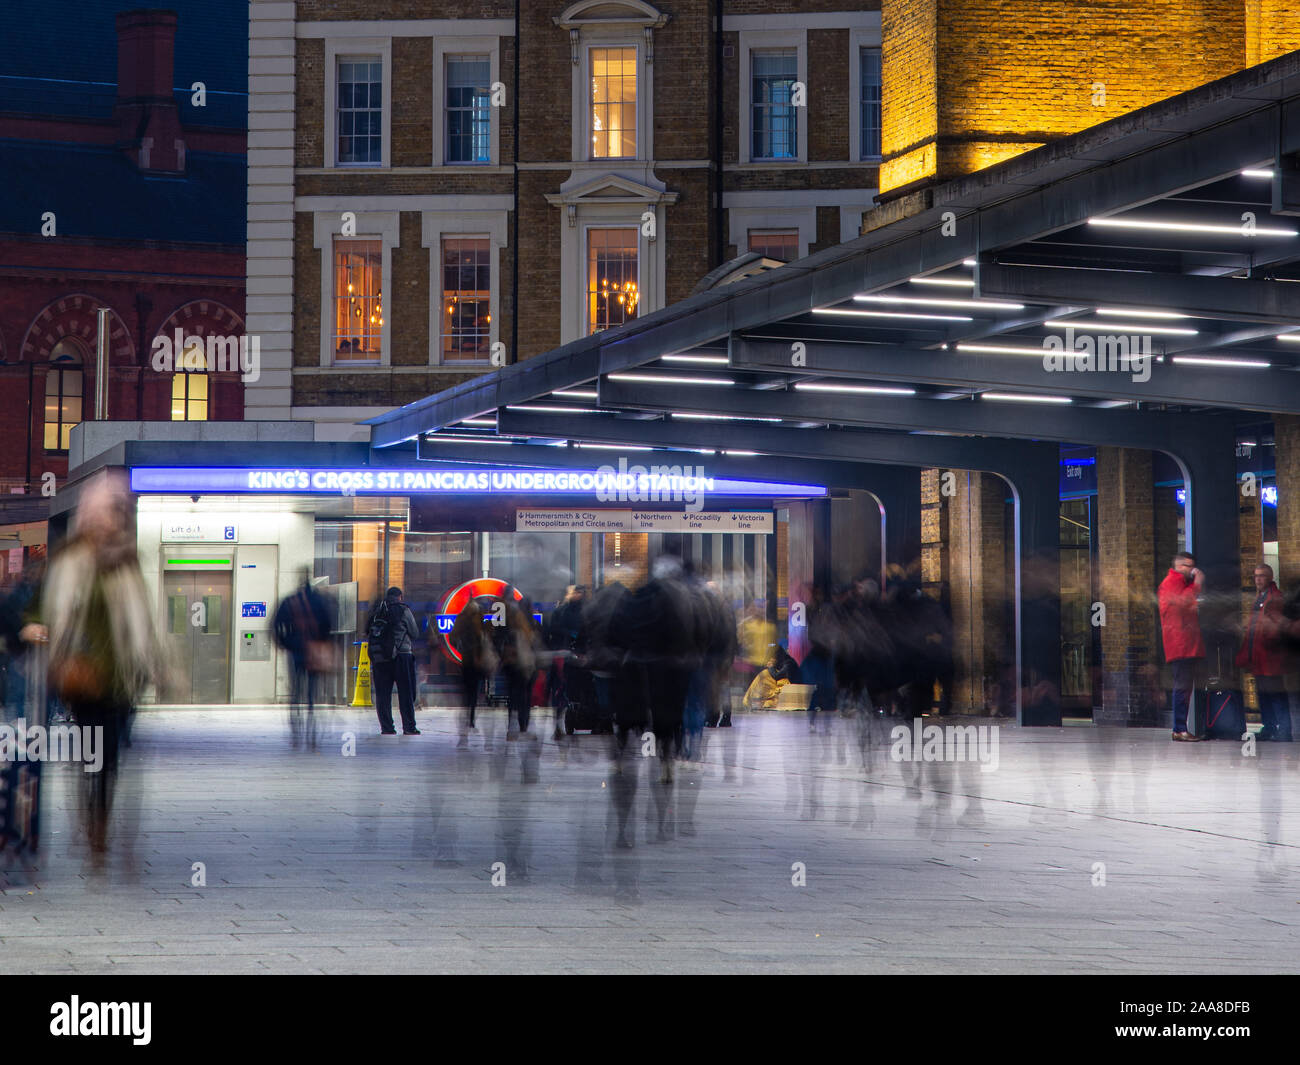 London, England, UK - November 22, 2018: Crowds of commuters walk through King's Cross railway station in London on a winter evening. Stock Photo